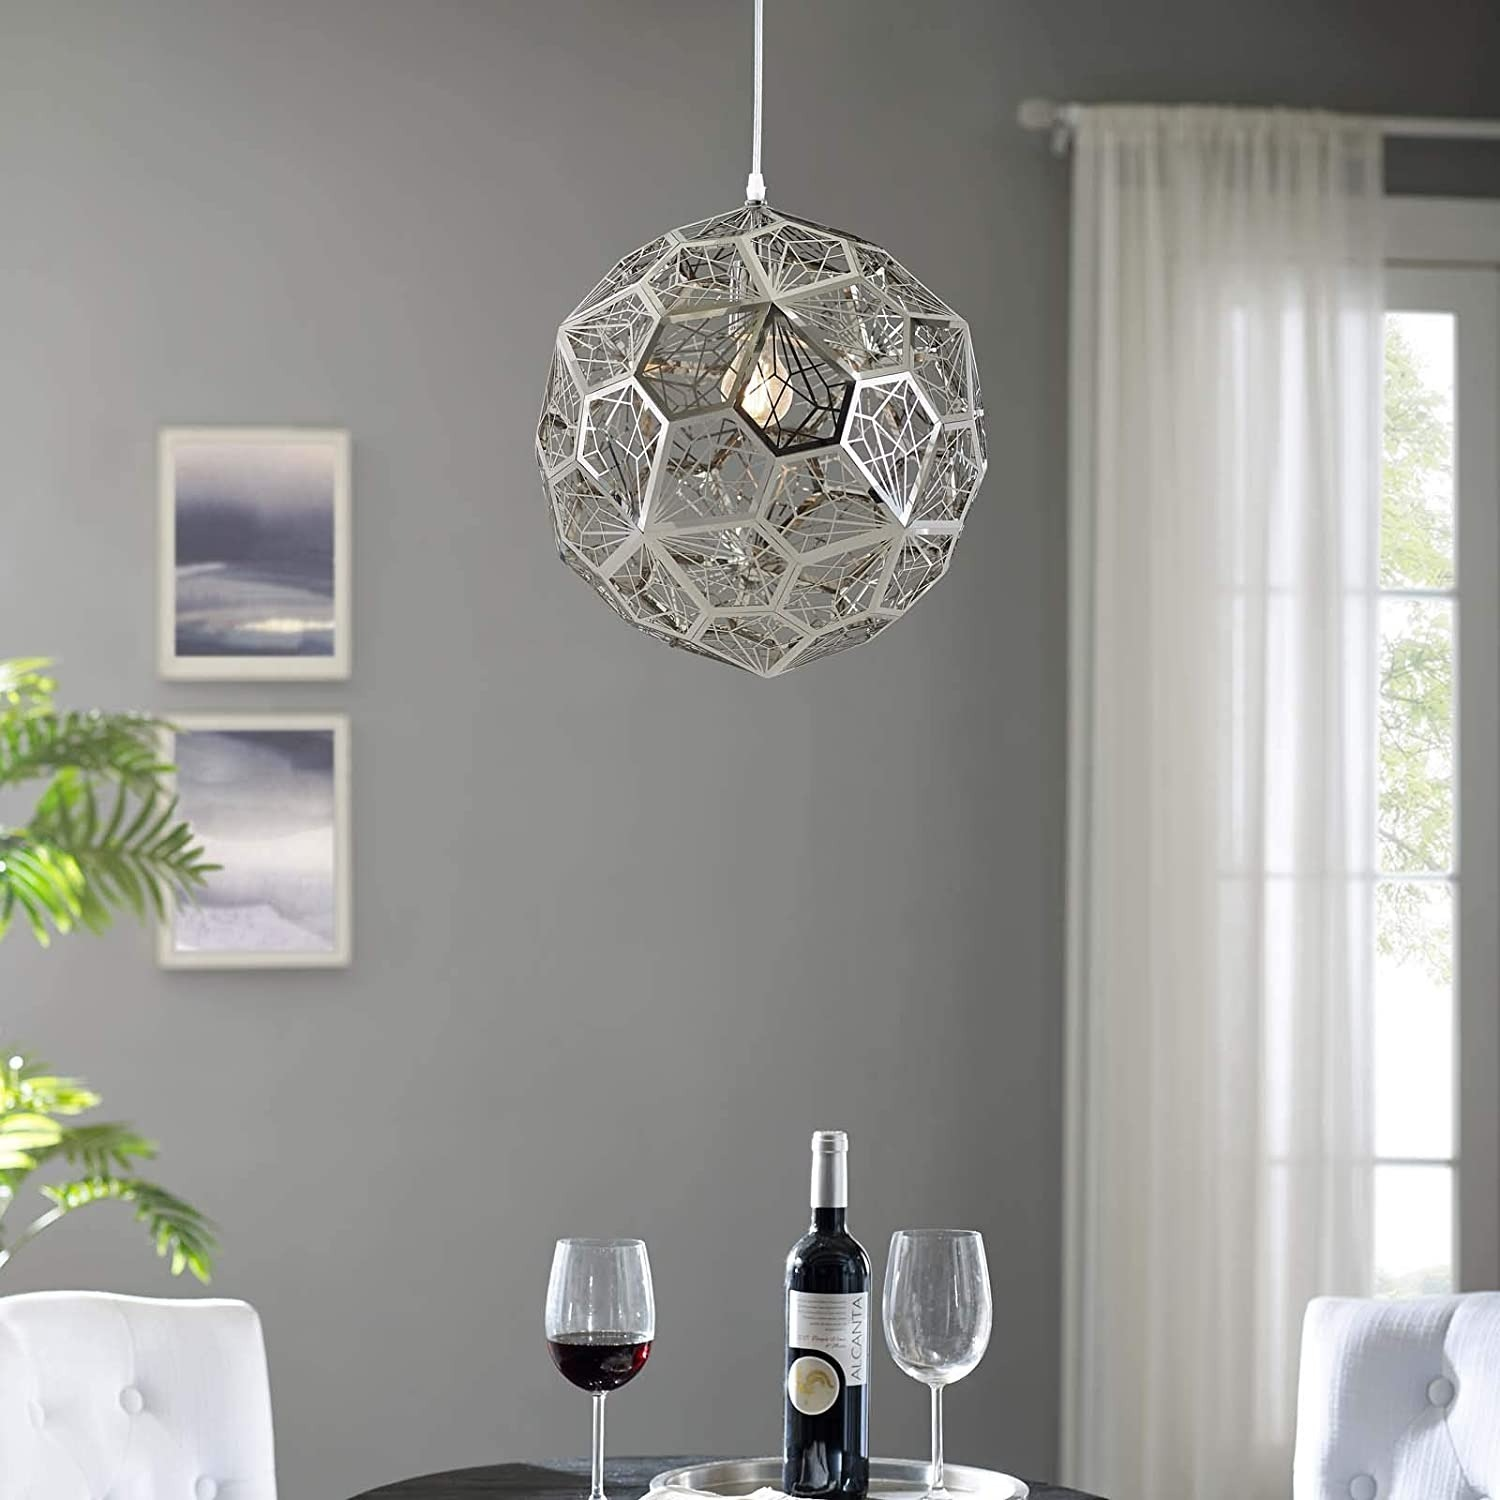 Pendant Chandelier In Diamond-Shaped Pattern - image-3